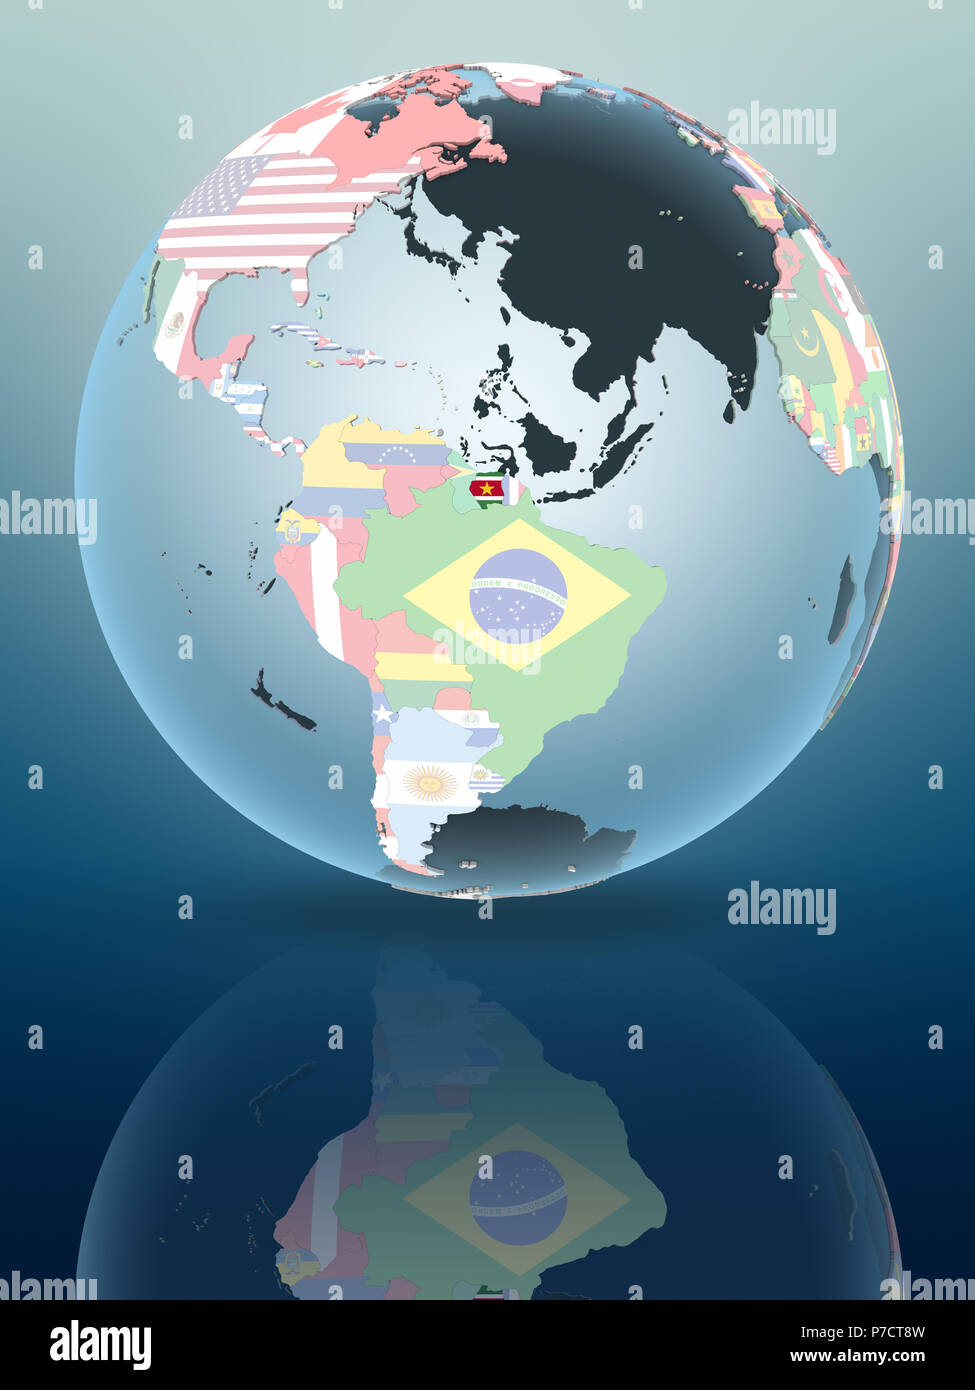 Suriname on political globe reflecting on shiny surface. 3D illustration. - Stock Image